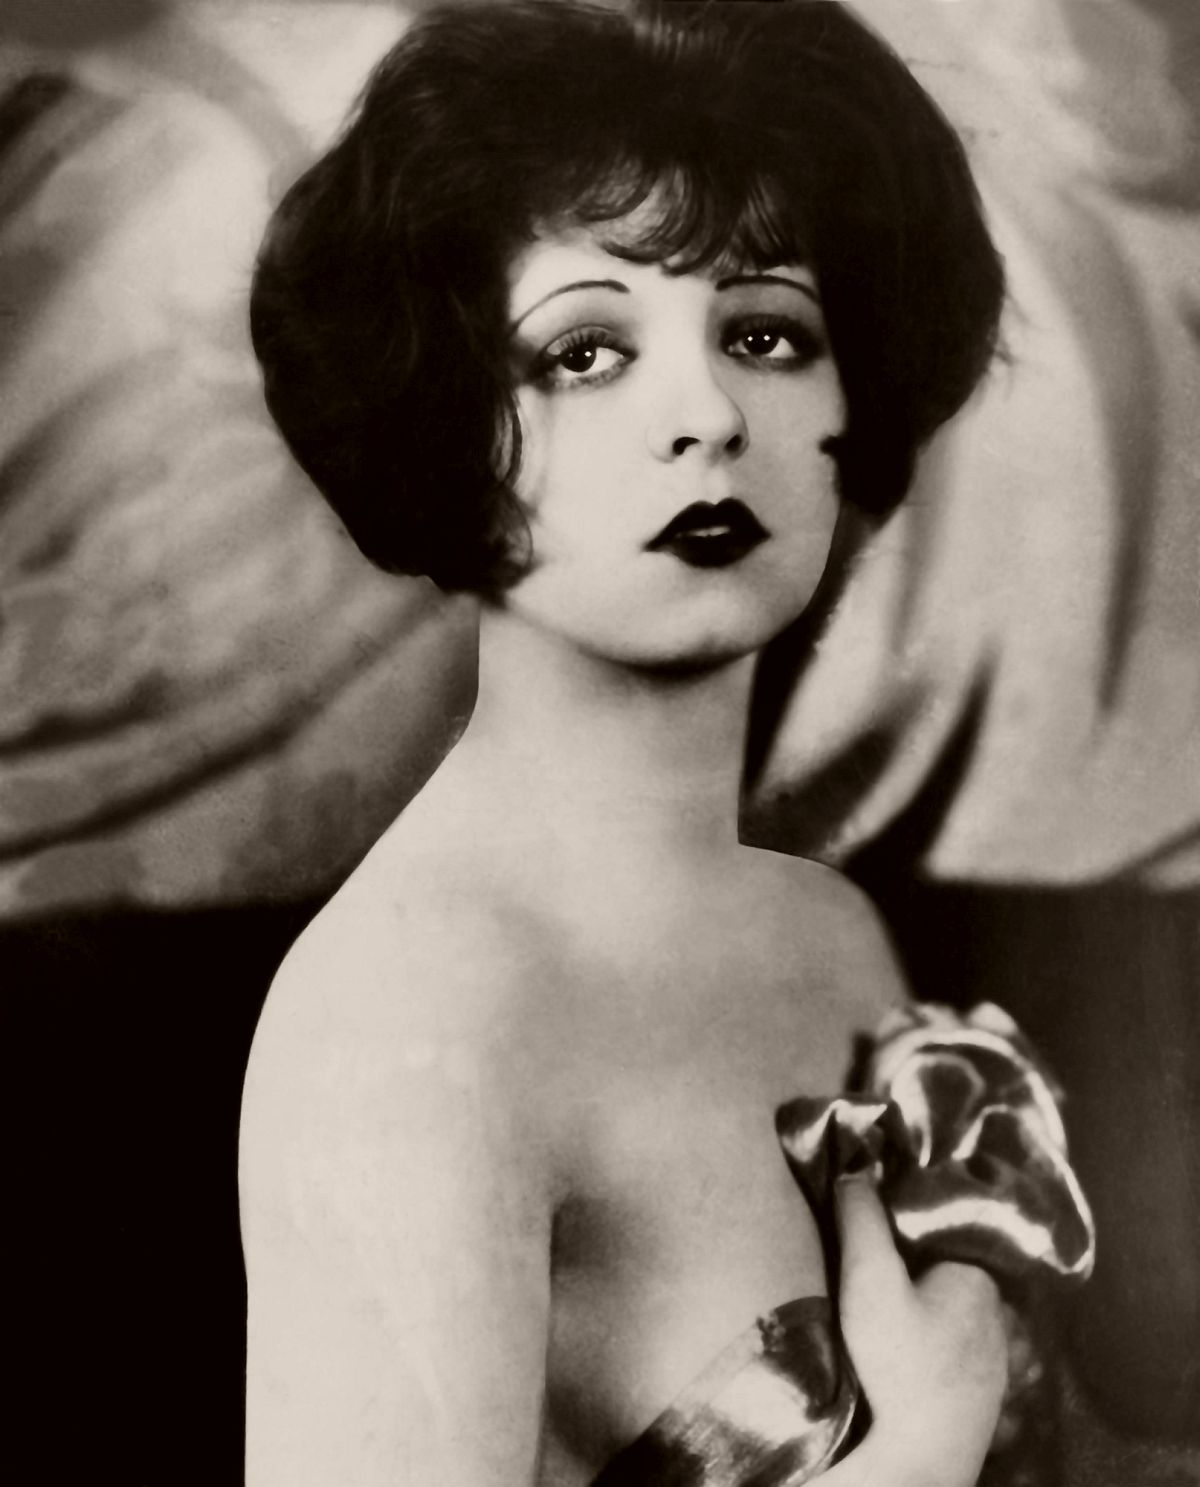 vintage portraits of clara bow � silent movie star